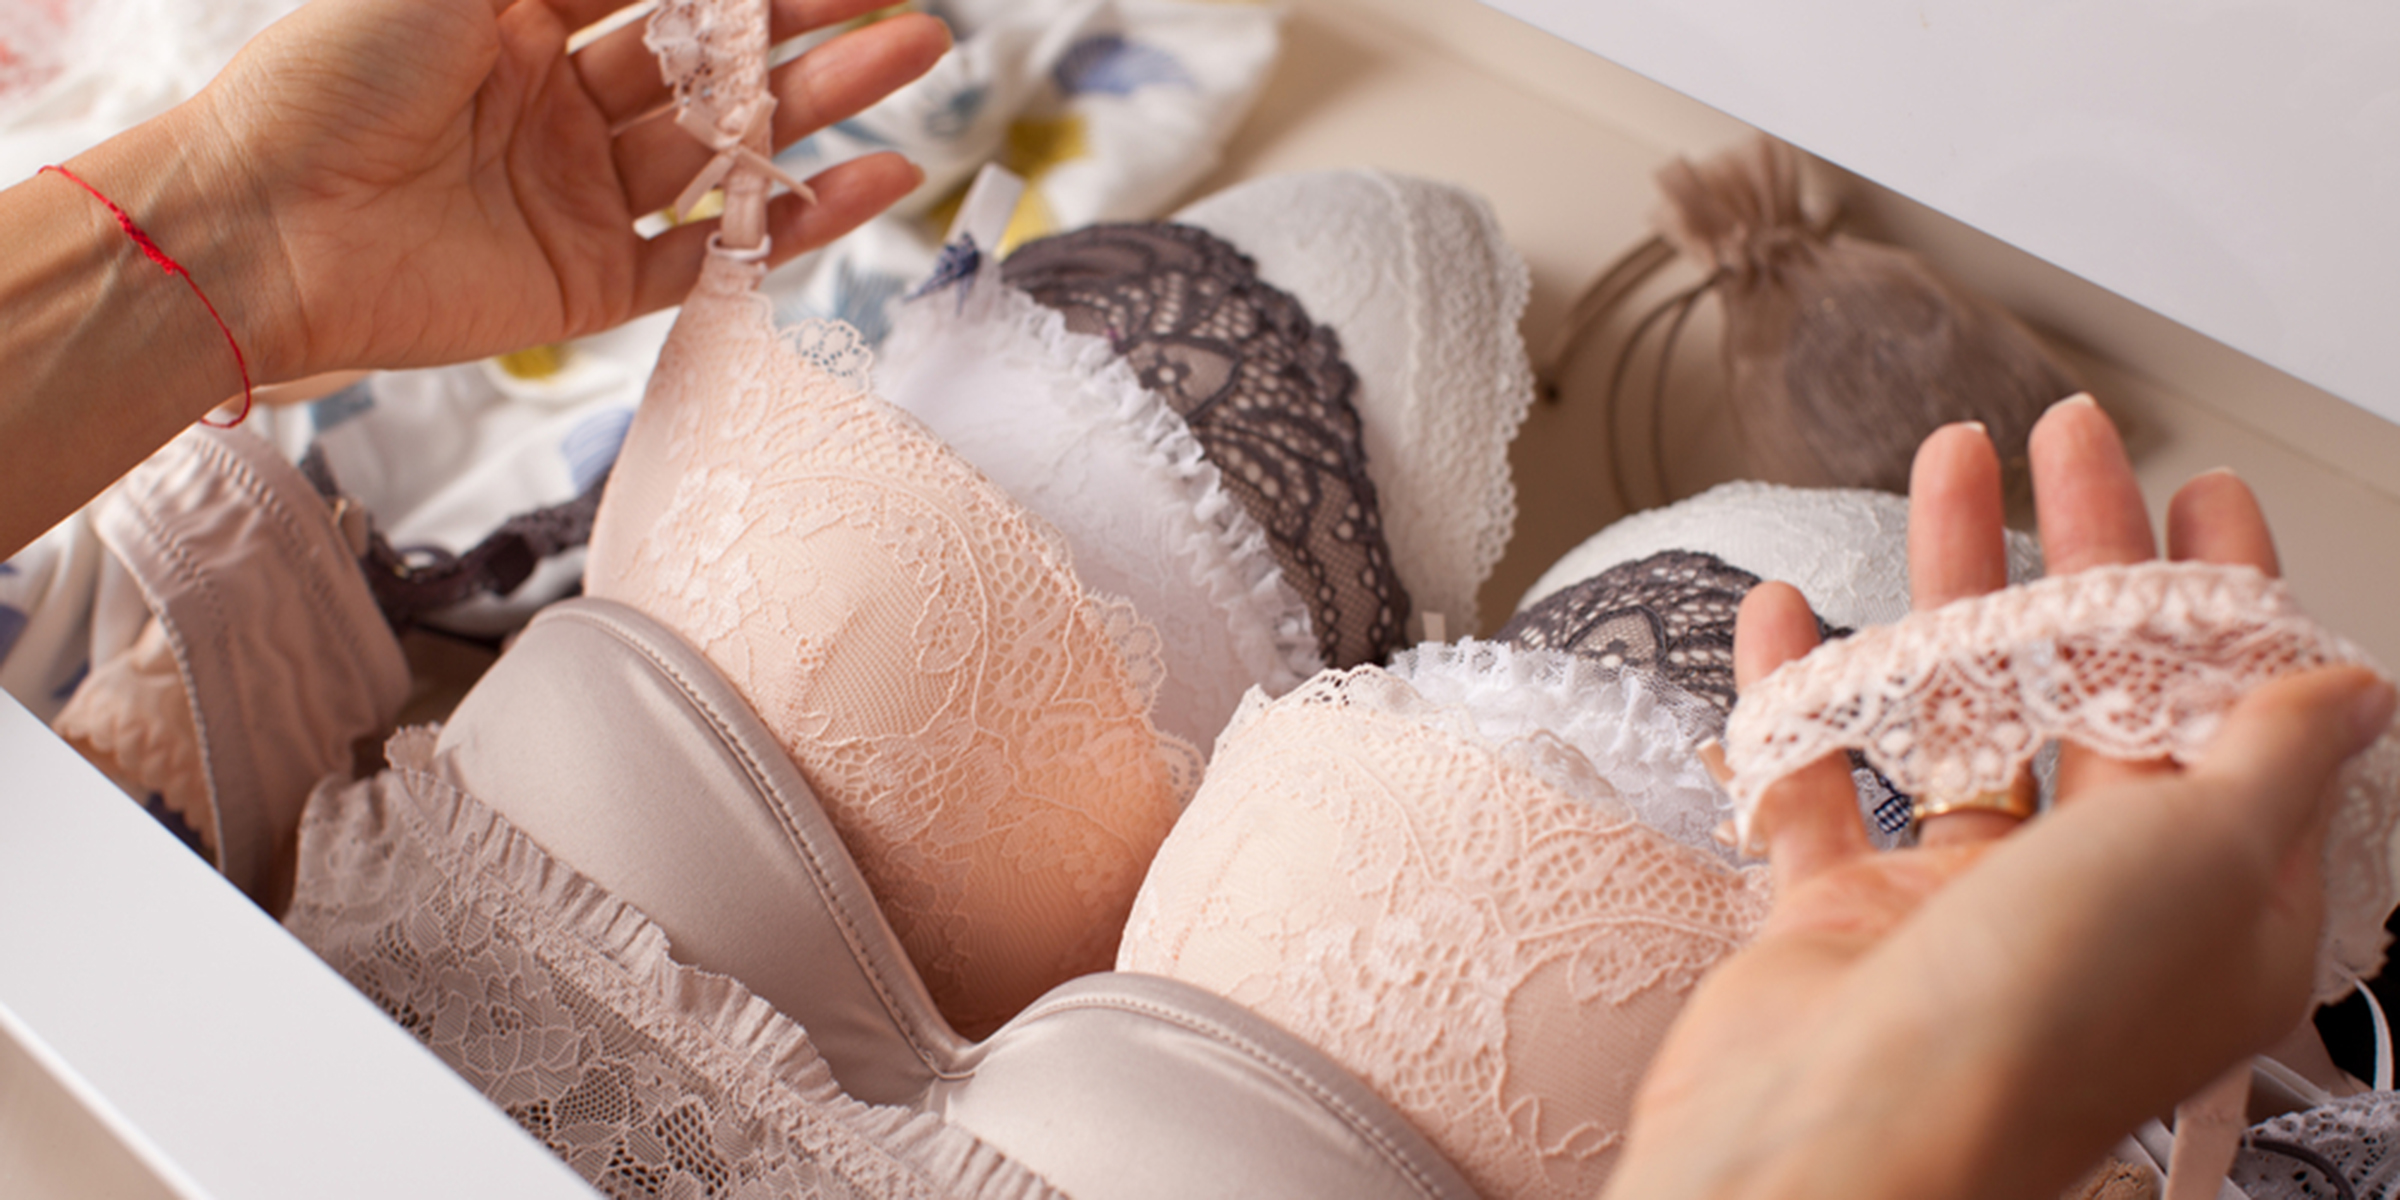 eaa0b14af0a The 9 best bras every woman needs in 2019